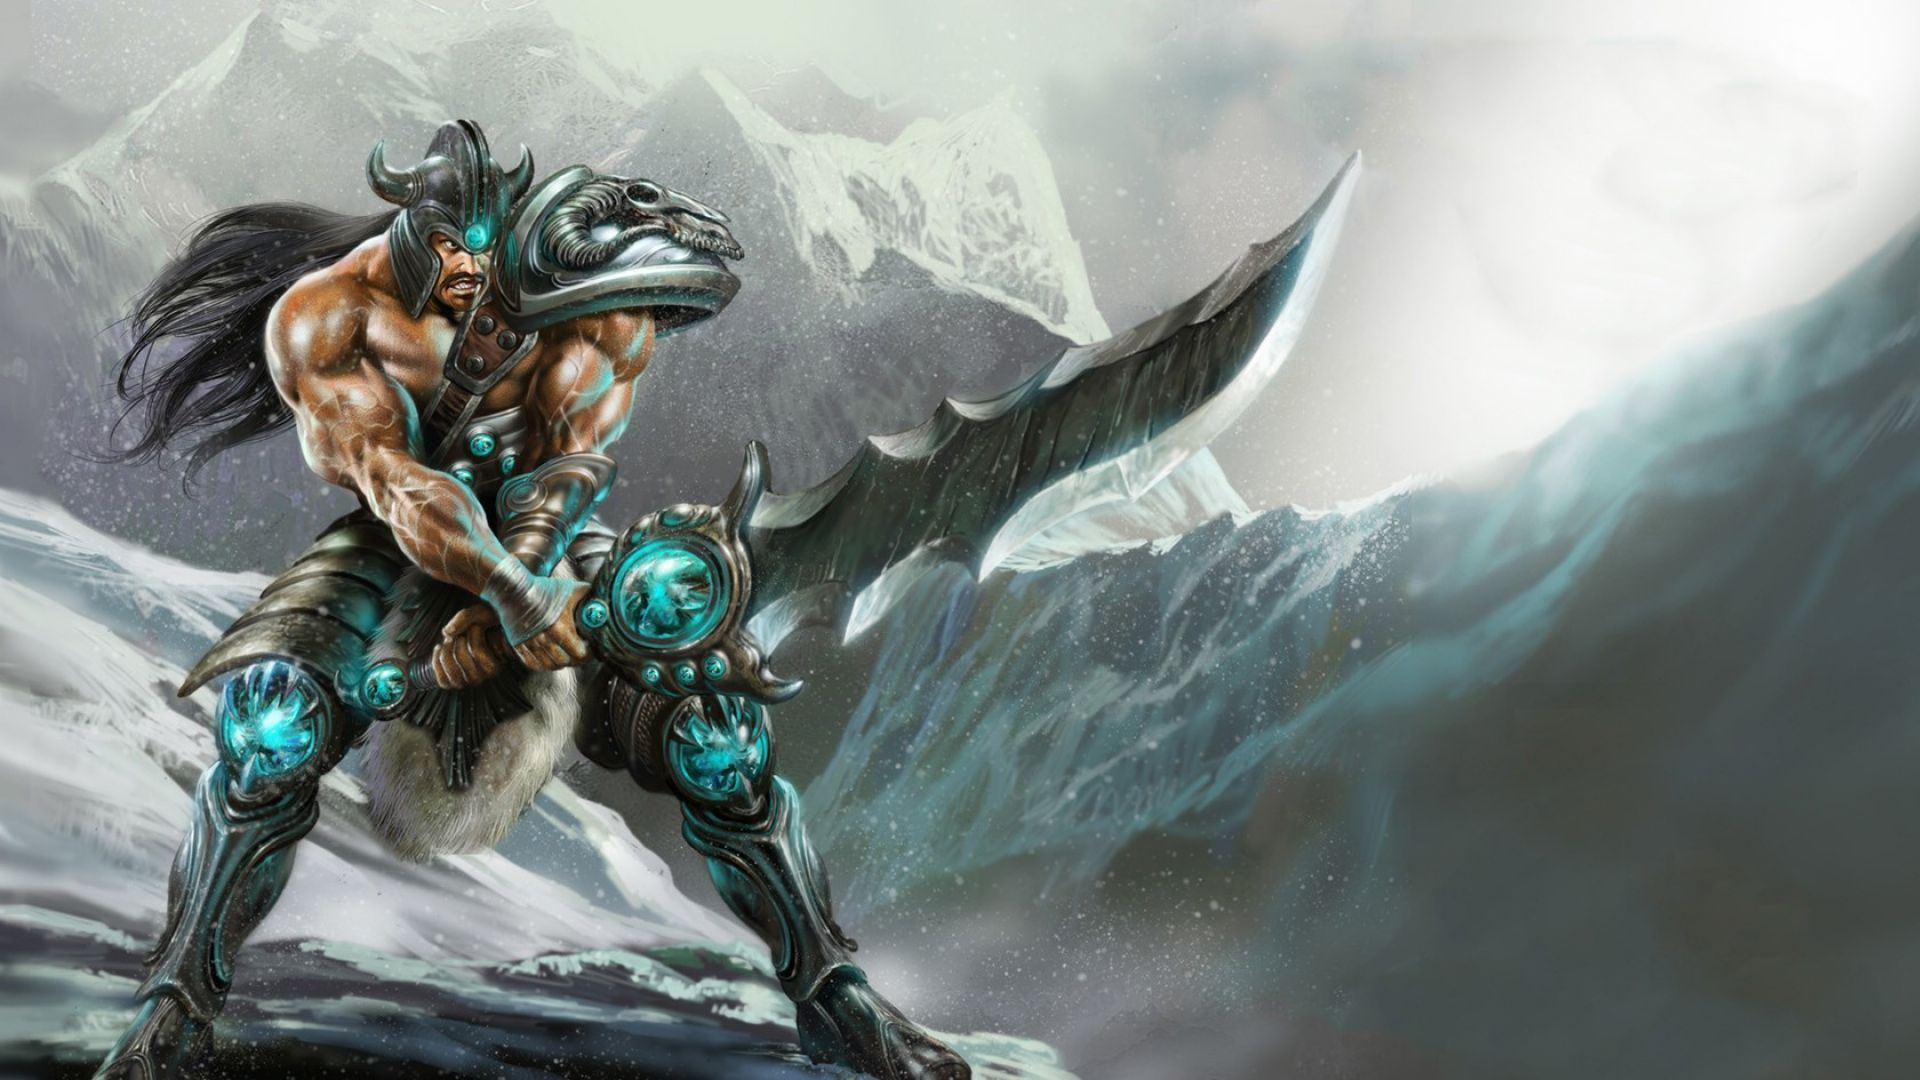 1920x1080 League Of Legends Tryndamere Game Wallpaper | Art | Pinterest ...